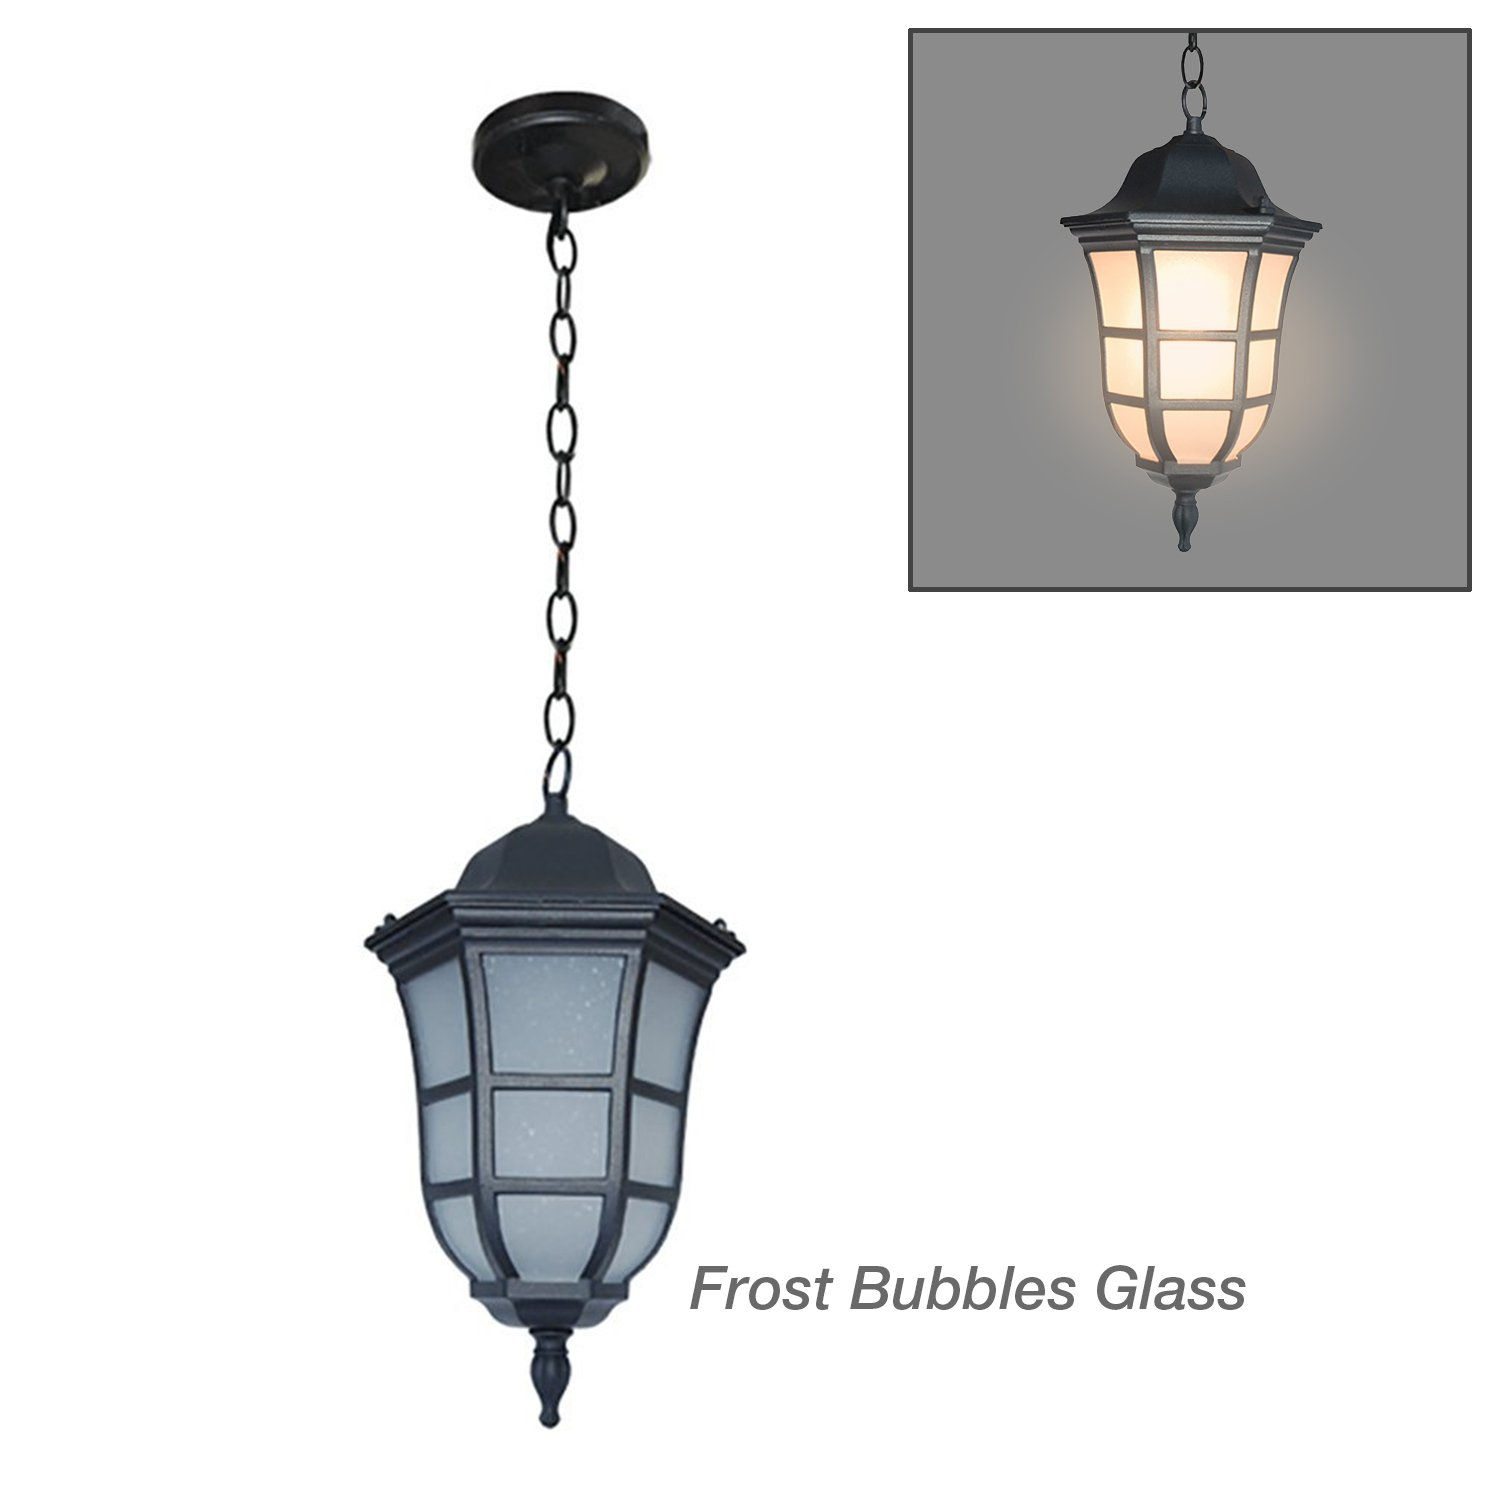 ETOPLIGHTING 13.5''x7.5'' Black Finish Frosted Glass Outdoor Hanging Light Weather Resistant, APL2067